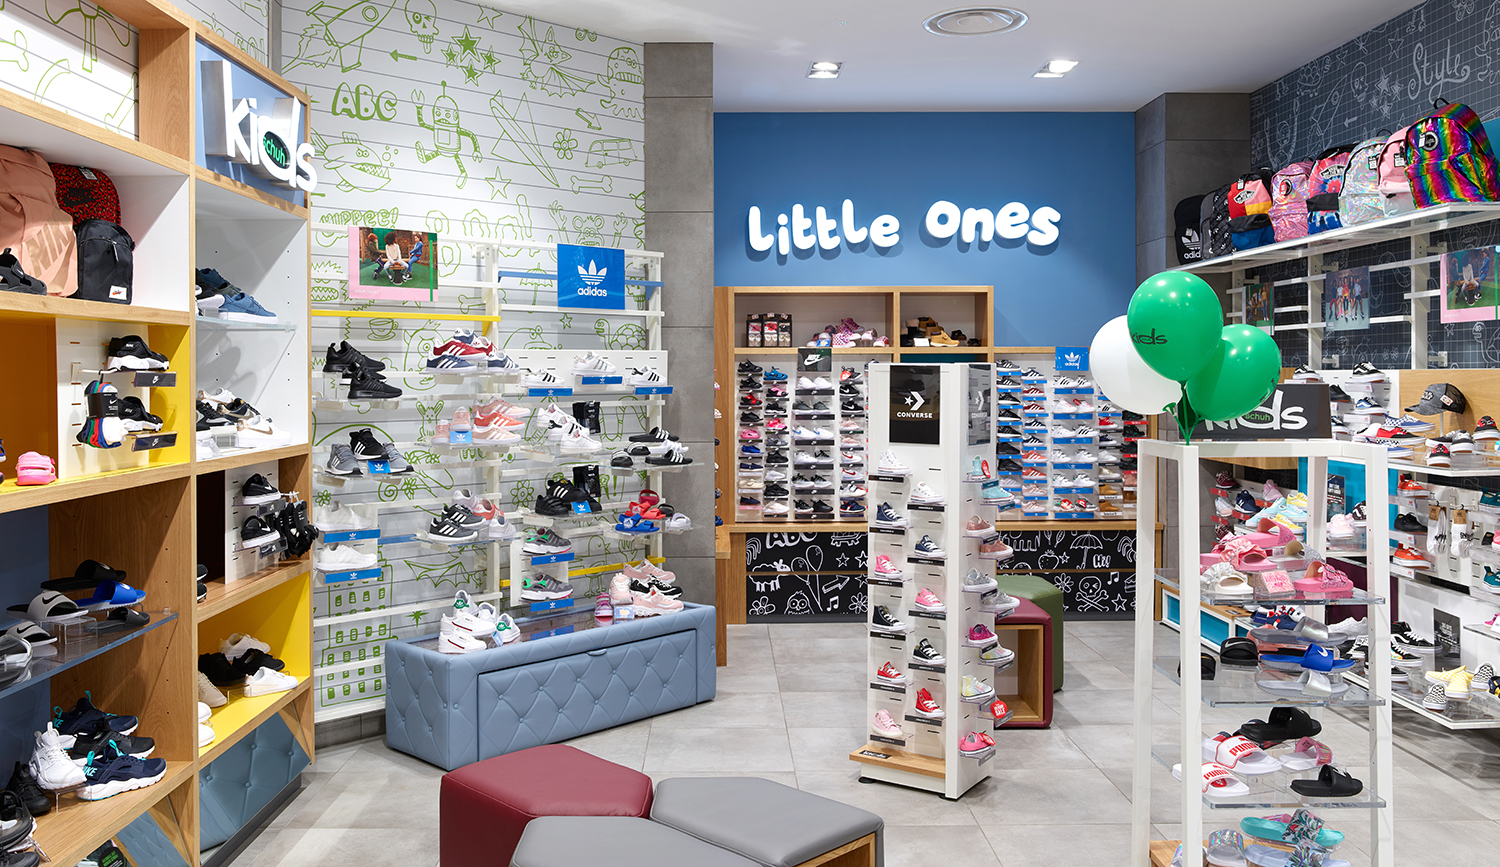 In-store elements including; Kids, little ones branding both face illuminated via LEDs and digital print wall graphics